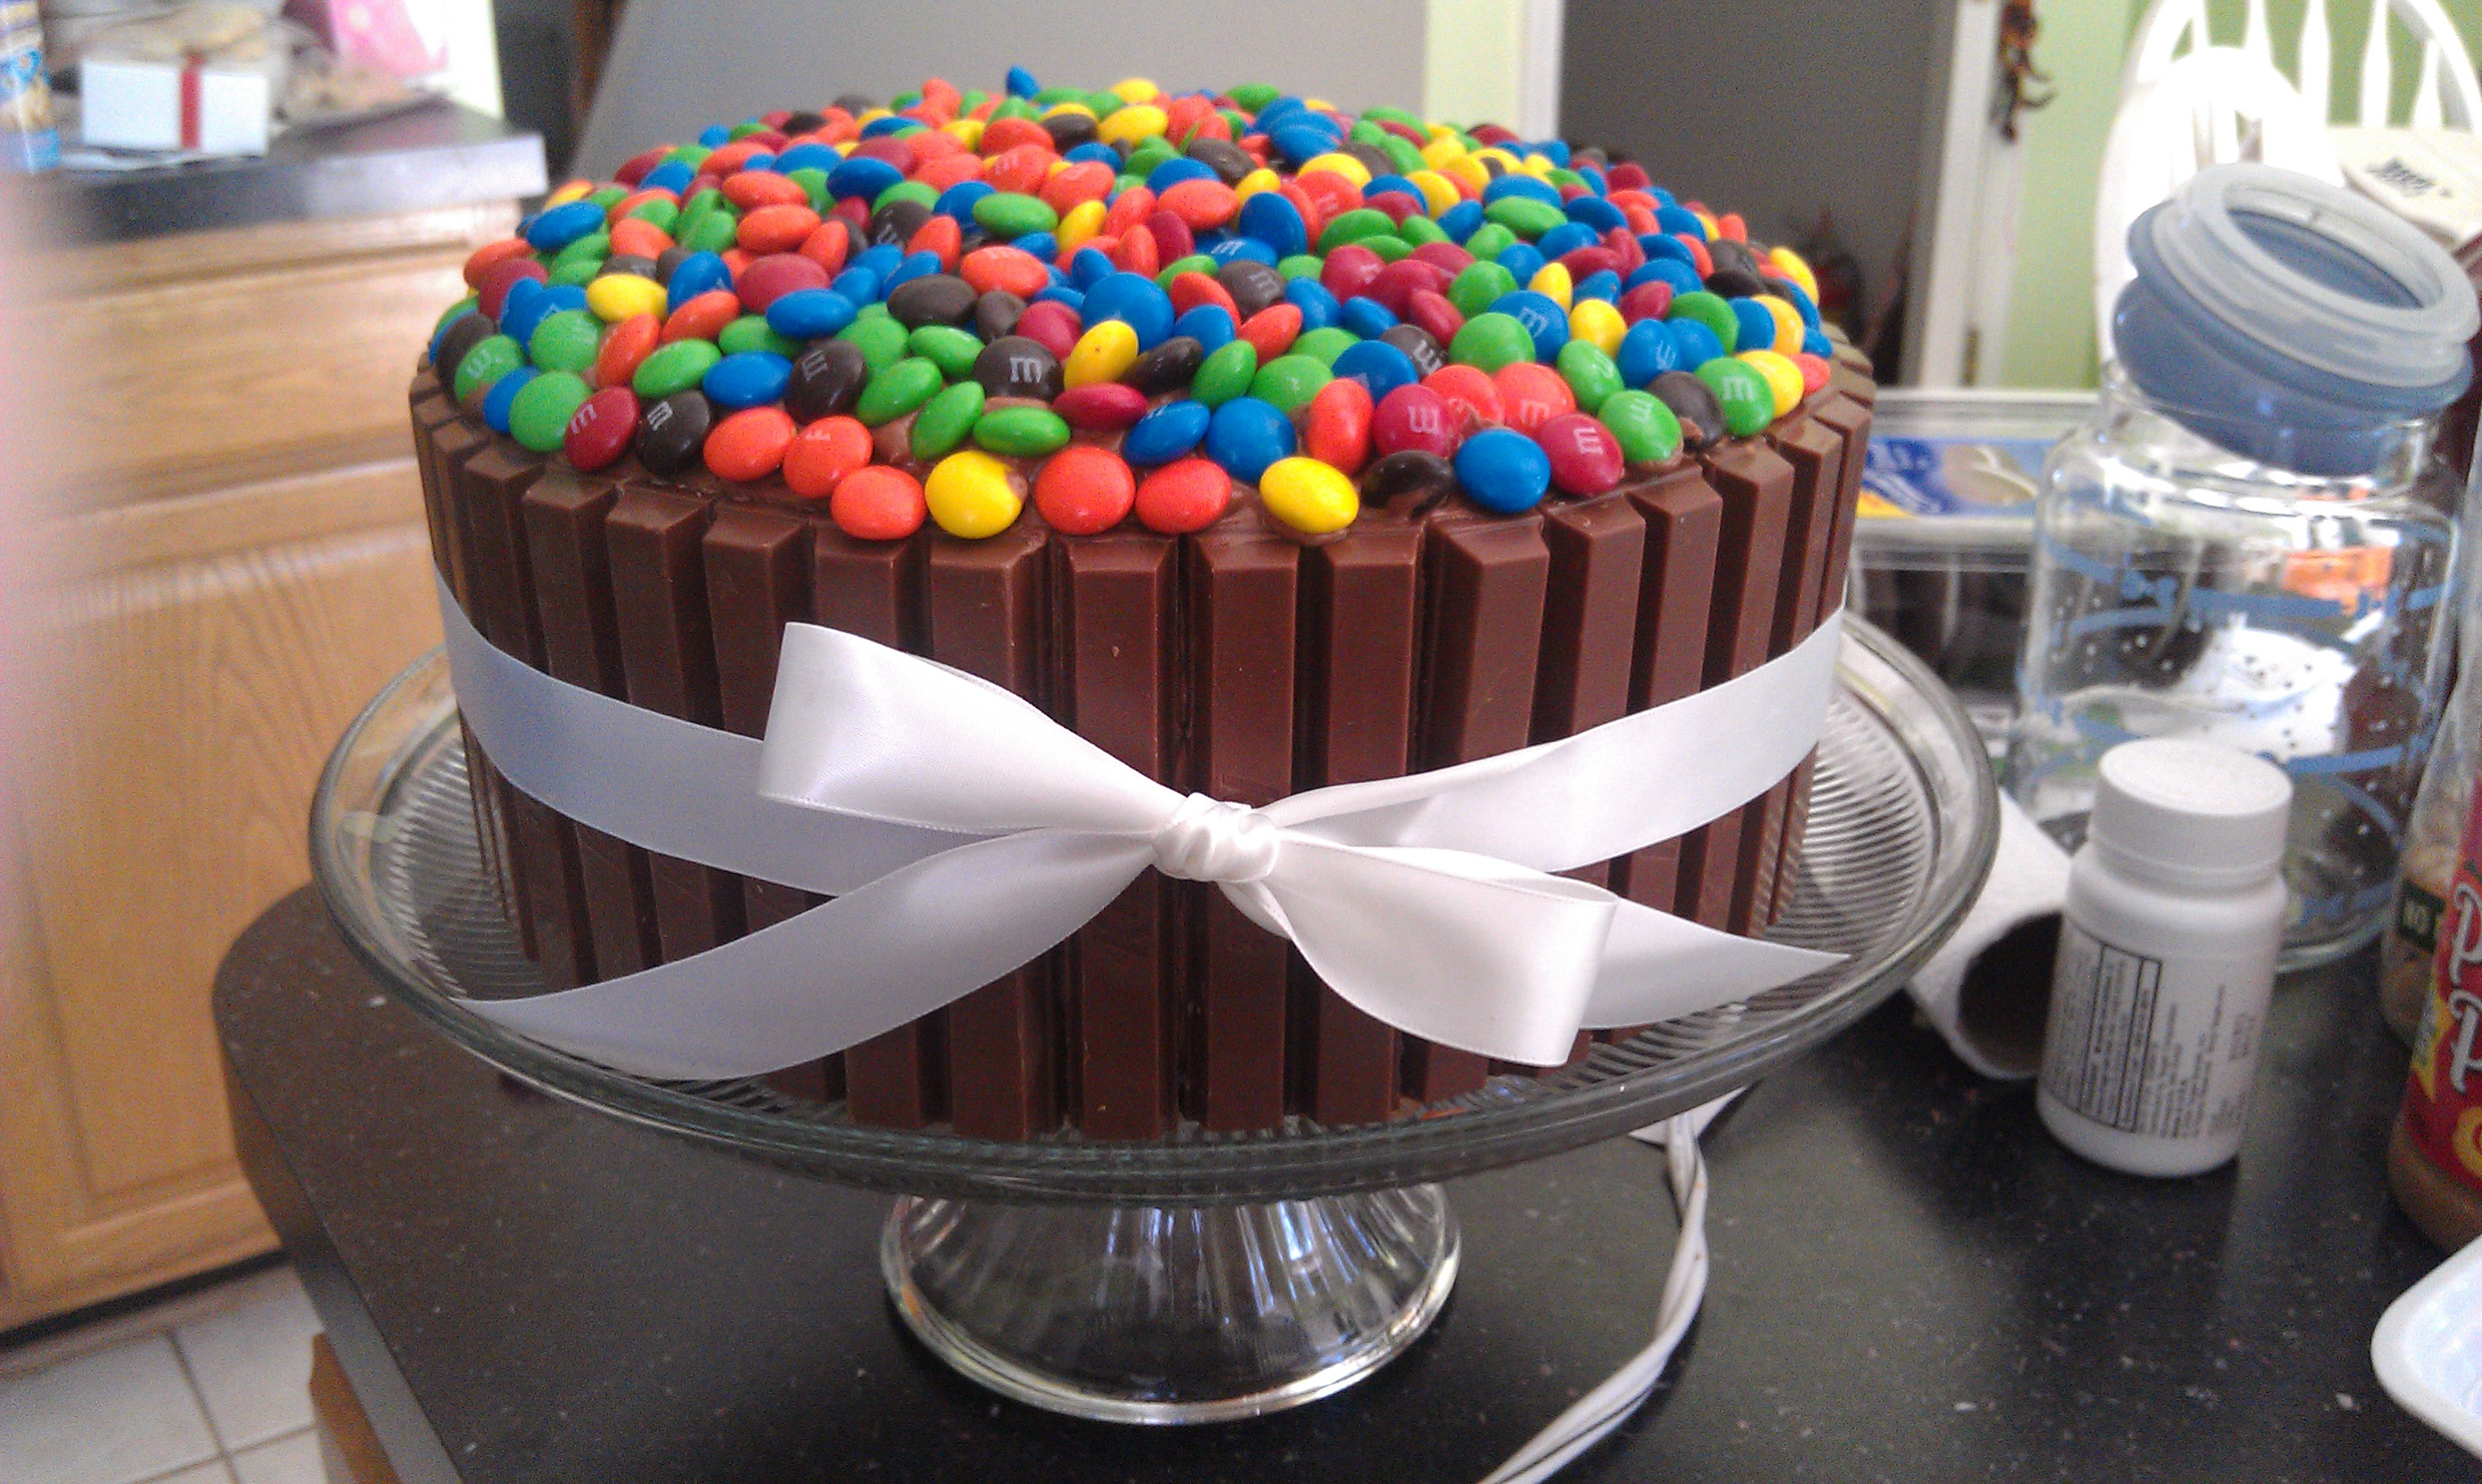 Birthday Cake Ideas For My Boyfriend Image Inspiration of Cake and